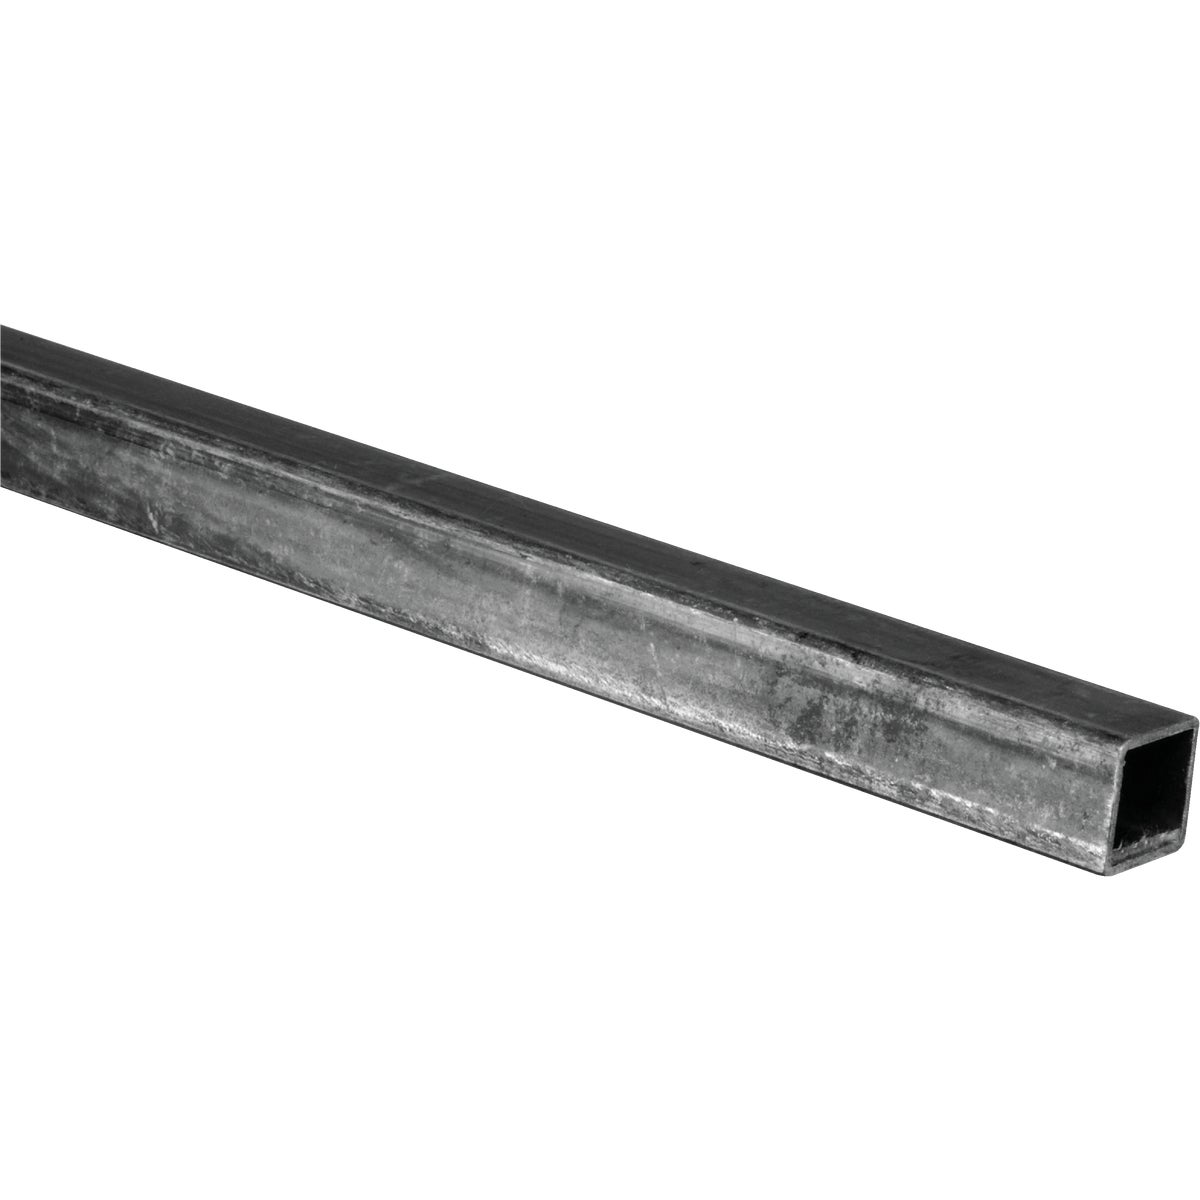 1/2X3' SQUARE TUBE - N346718 by National Mfg Co